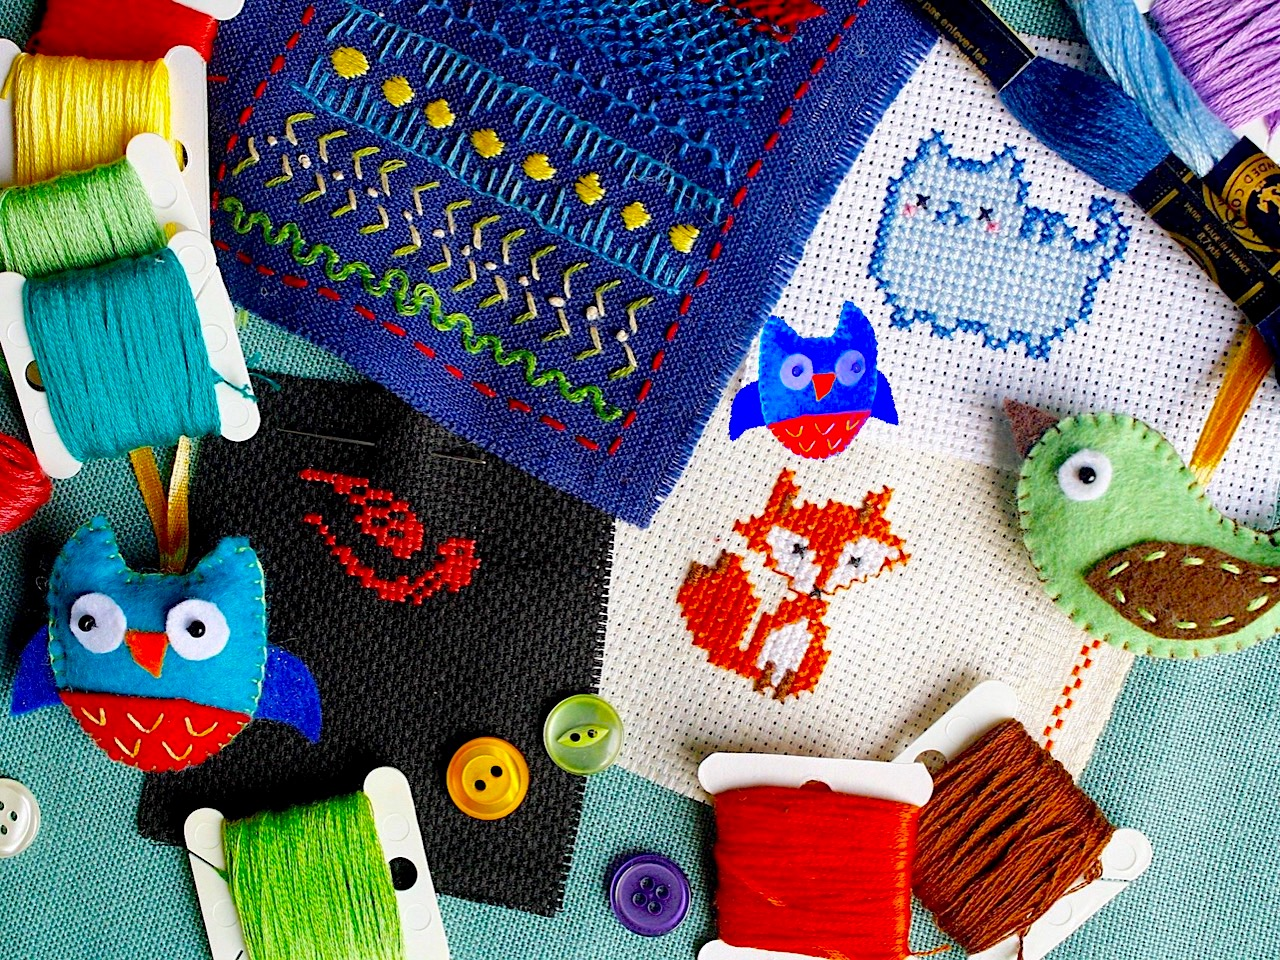 A mixture of sewing including embroidery and cross-stitch